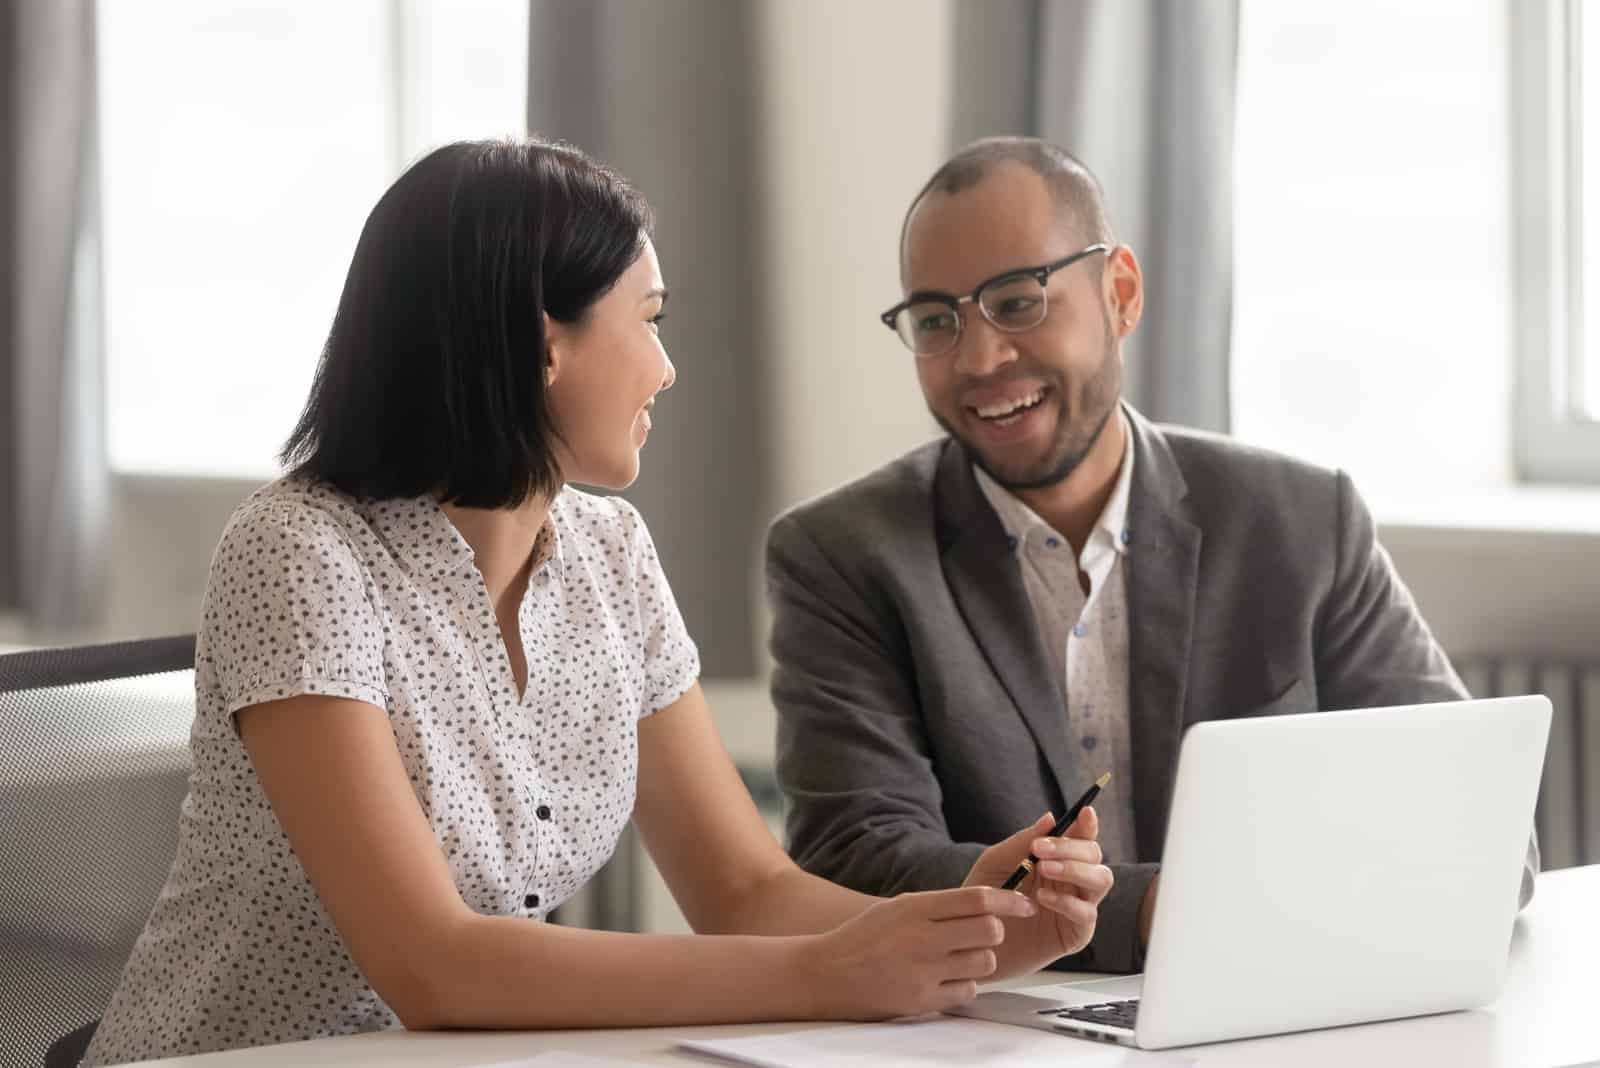 man and woman talking while sitting in office